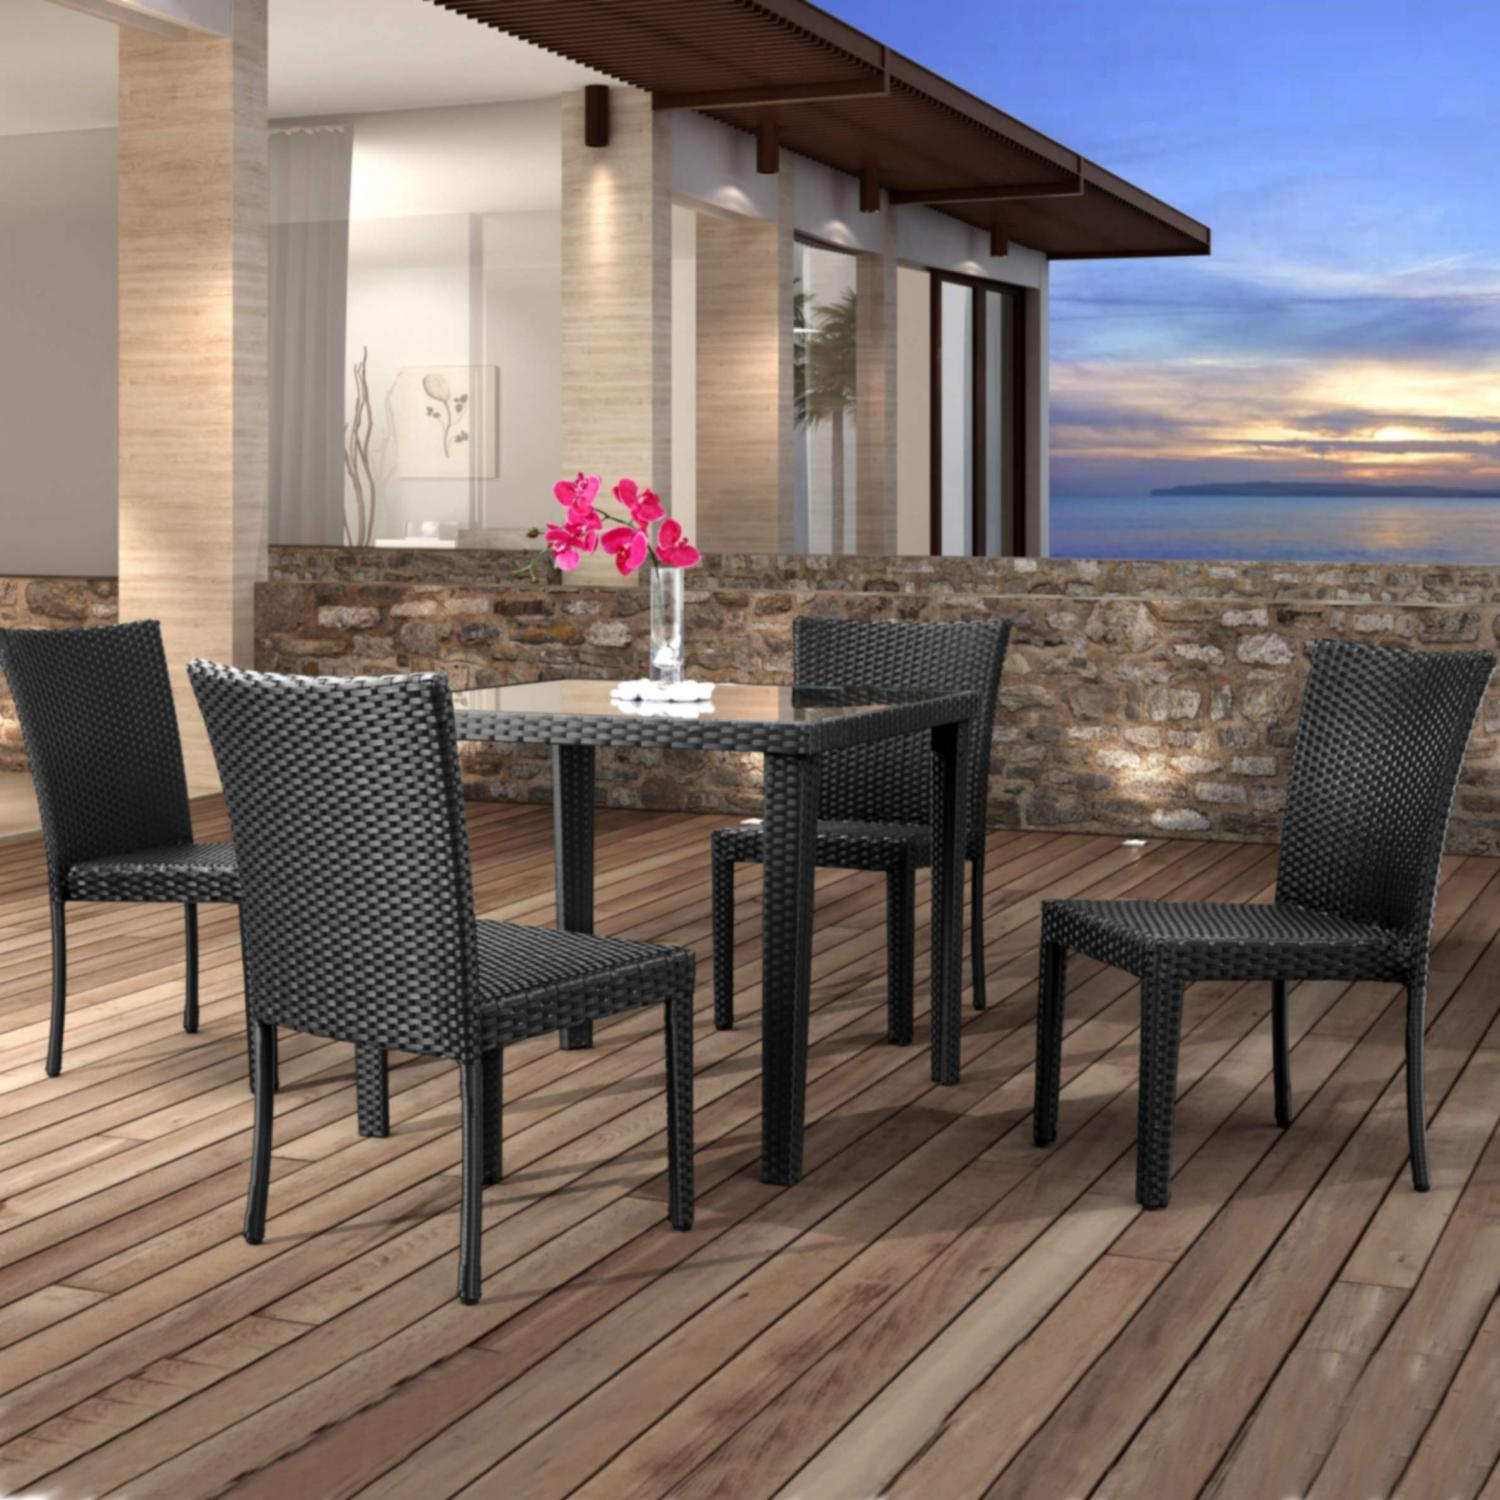 Zuo Modern Cavendish 4-person Patio Dining Set With Glass Top Table - Espresso at Sears.com